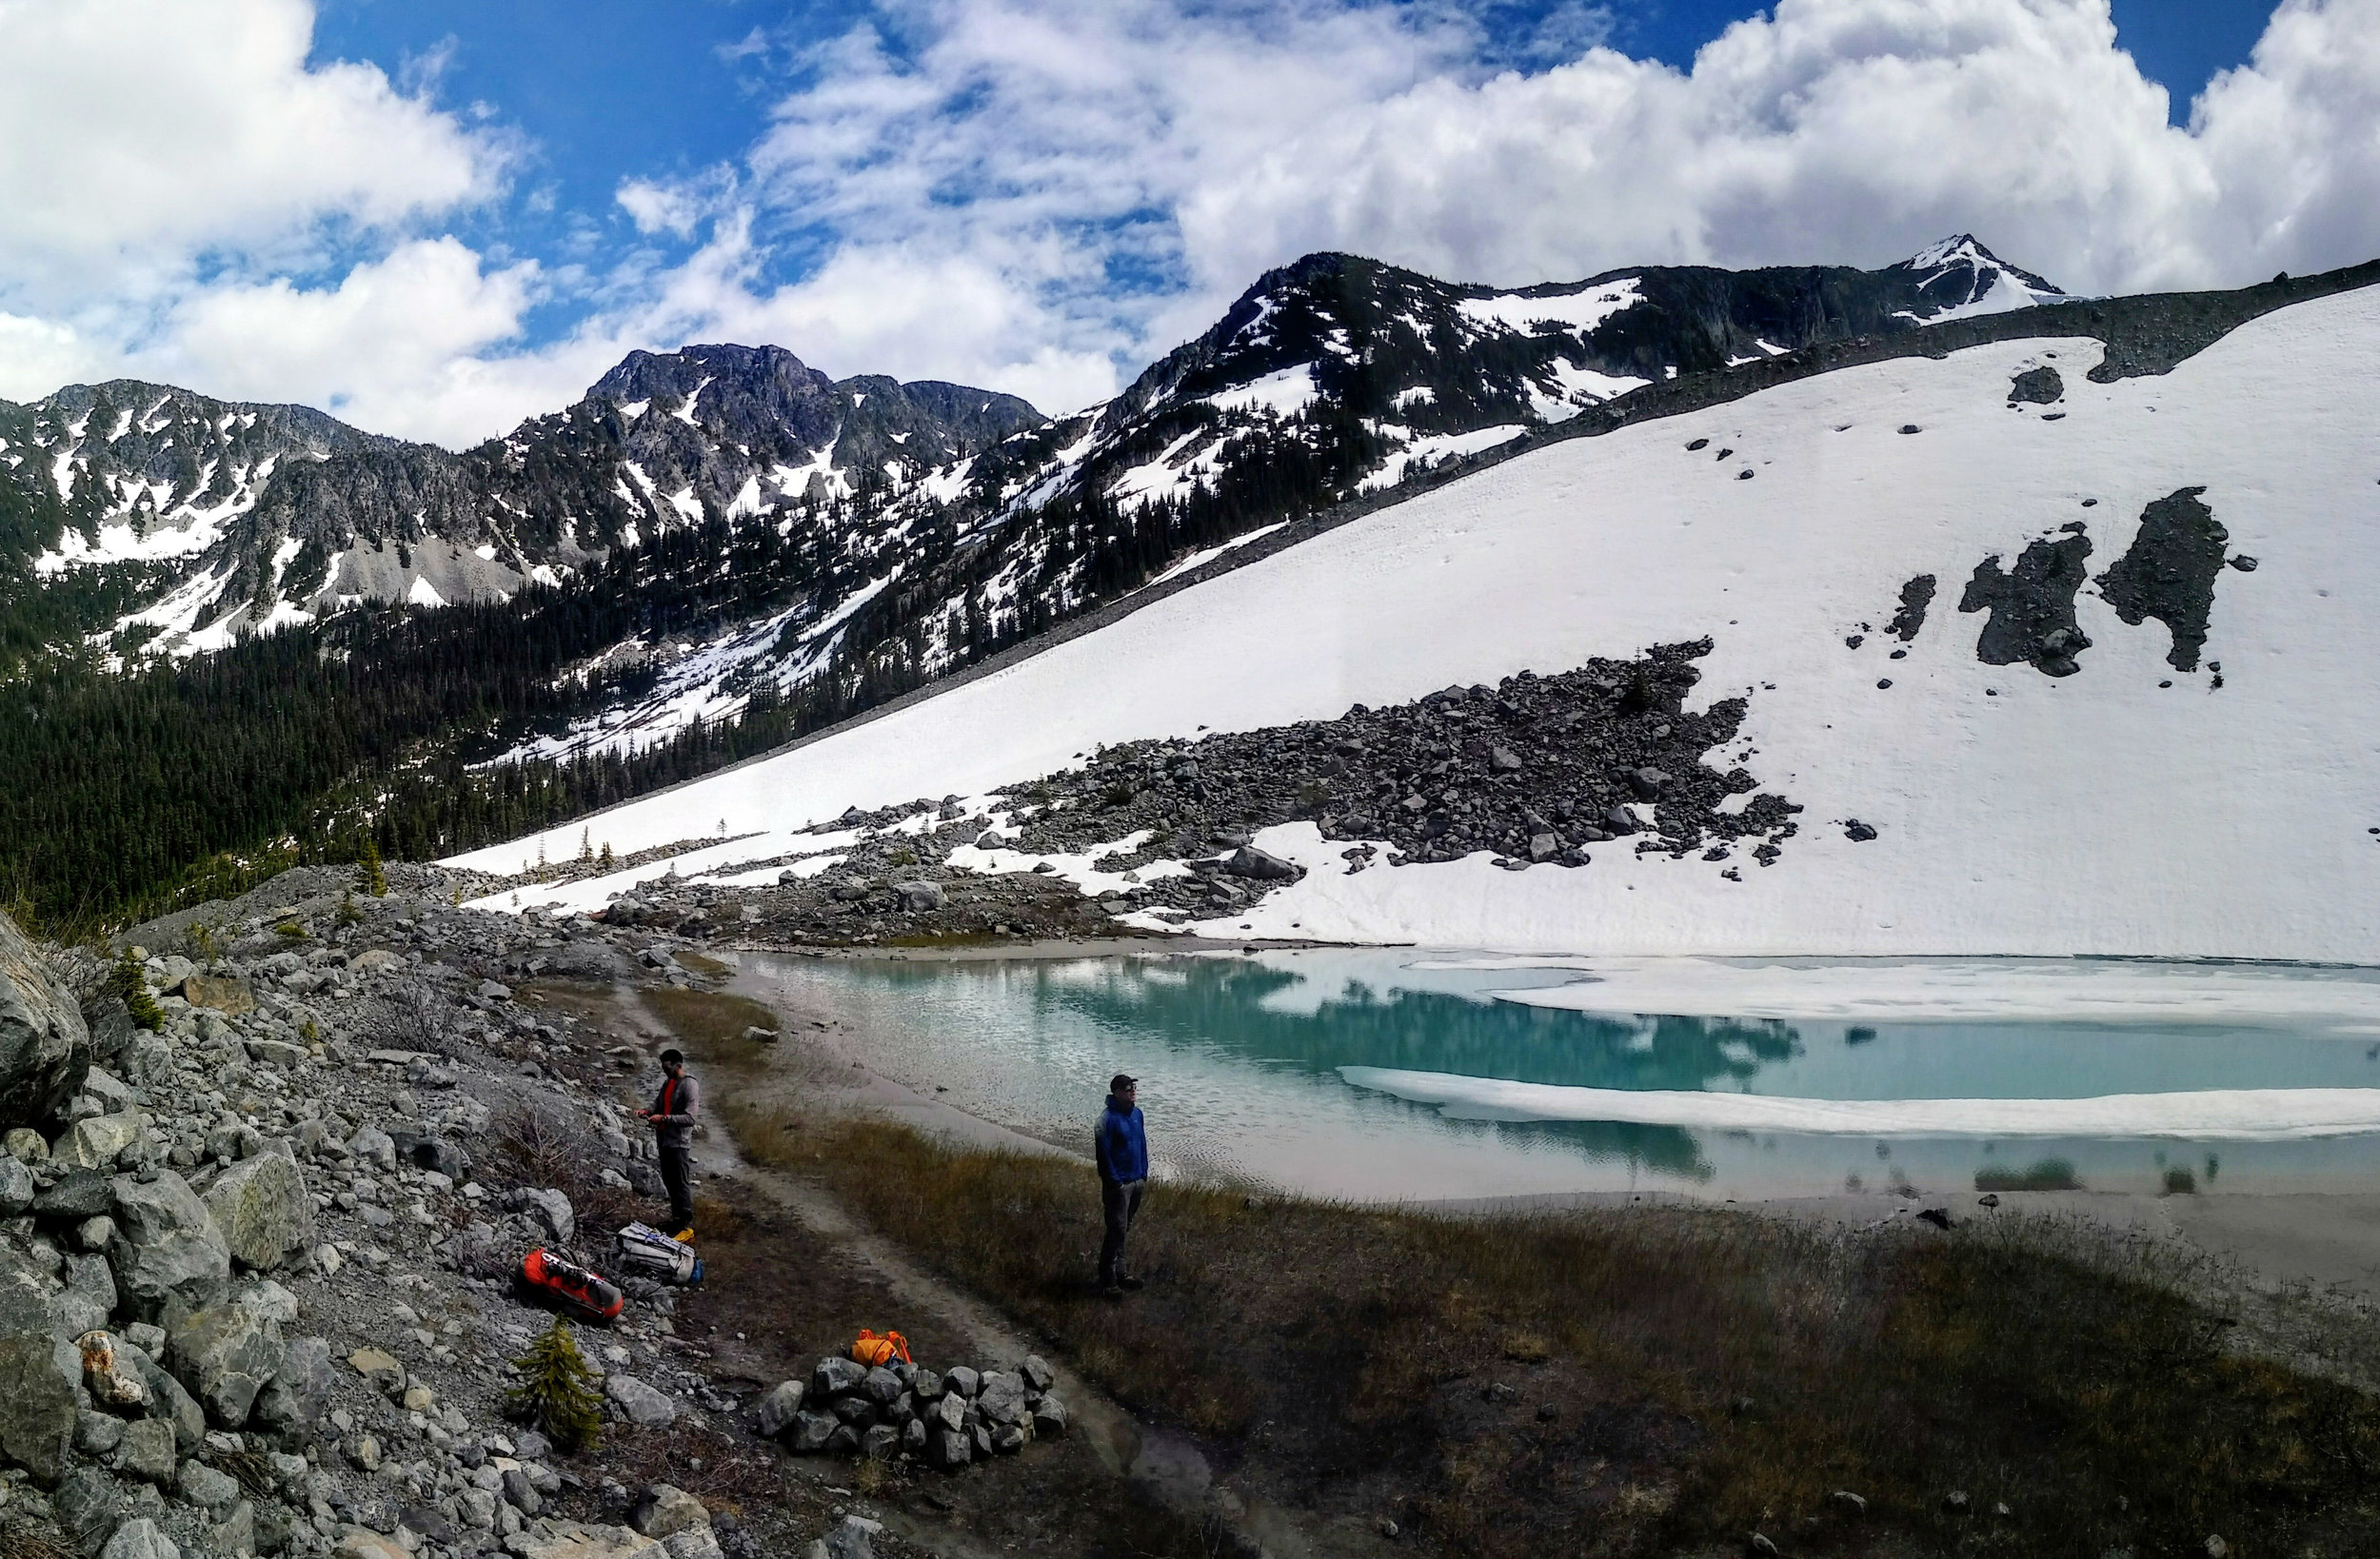 Camping by a glacial lake before climbing the next day. Matt is assessing the ascent.